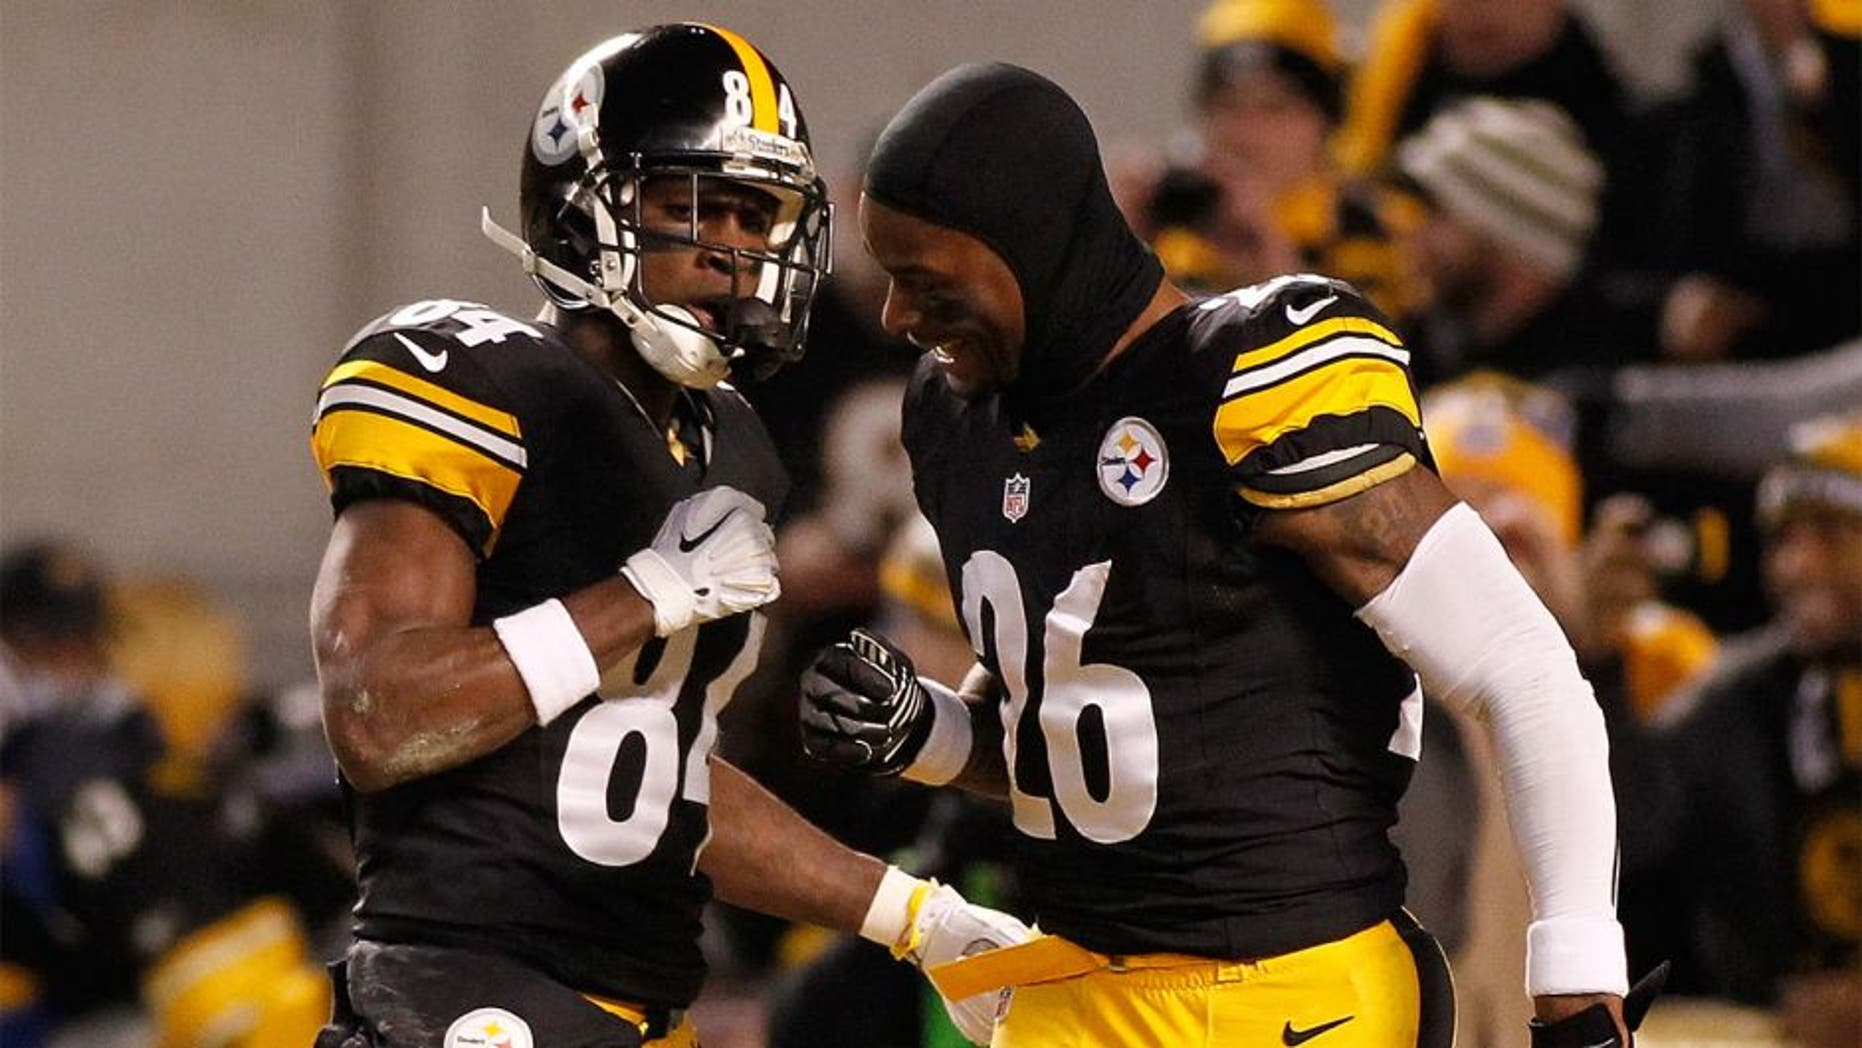 PITTSBURGH, PA - DECEMBER 28: Antonio Brown #84 of the Pittsburgh Steelers celebrates his punt return for a touchdown with Le'Veon Bell #26 during the first quarter against the Cincinnati Bengals at Heinz Field on December 28, 2014 in Pittsburgh, Pennsylvania. (Photo by Justin K. Aller/Getty Images)